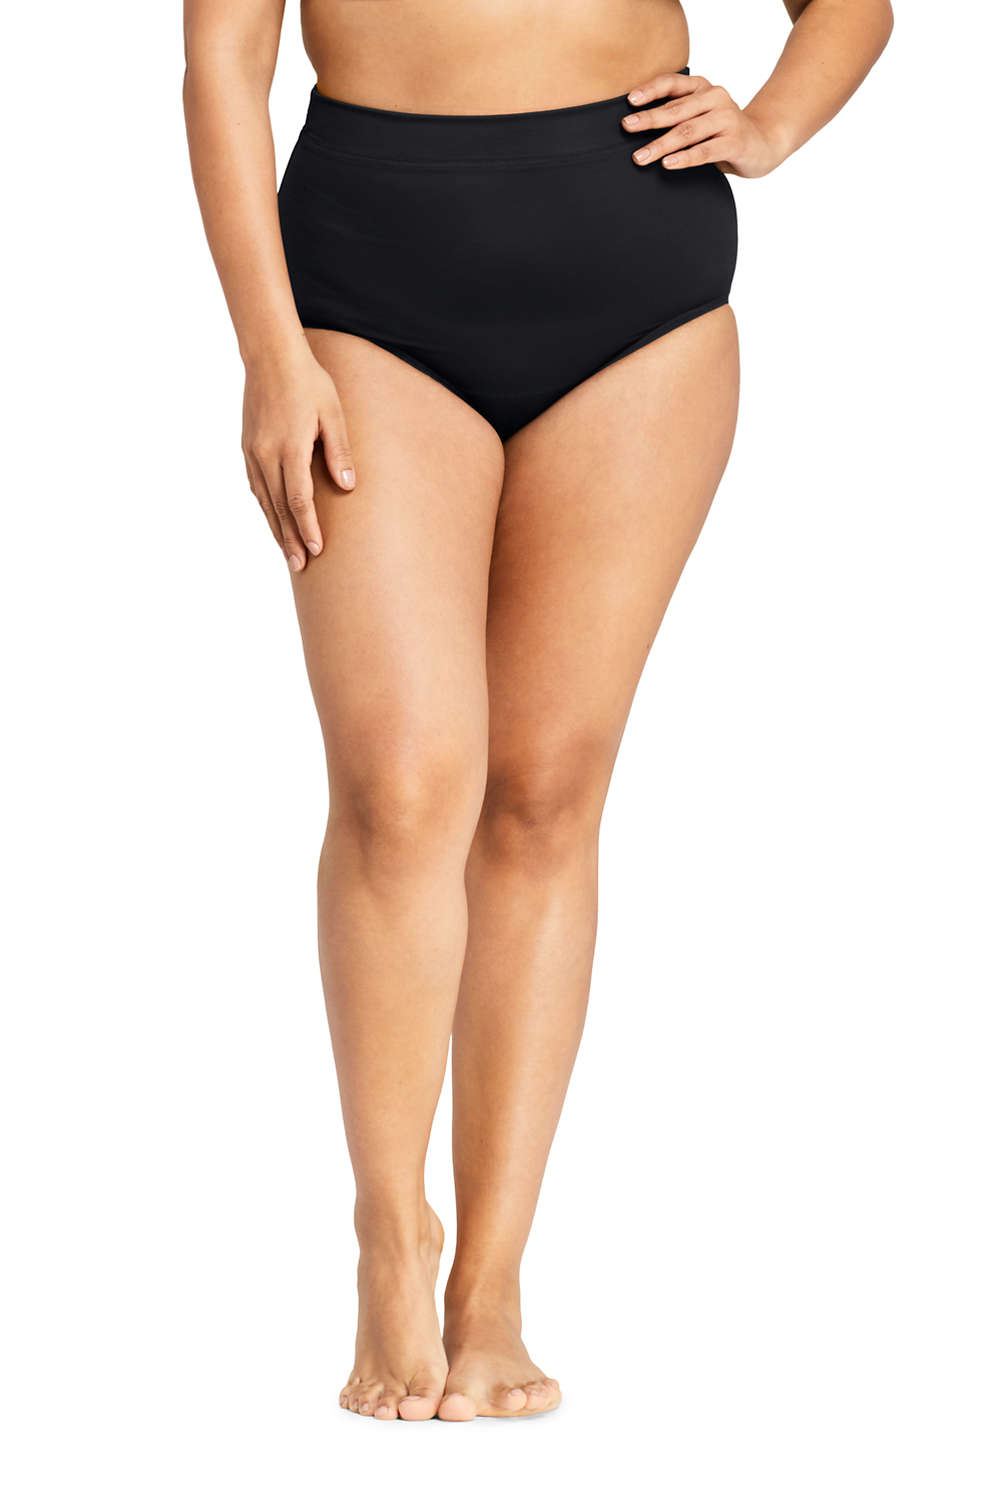 ba573e2718 Women s Plus Size Slender High Waisted Bikini Bottoms with Tummy Control  from Lands  End